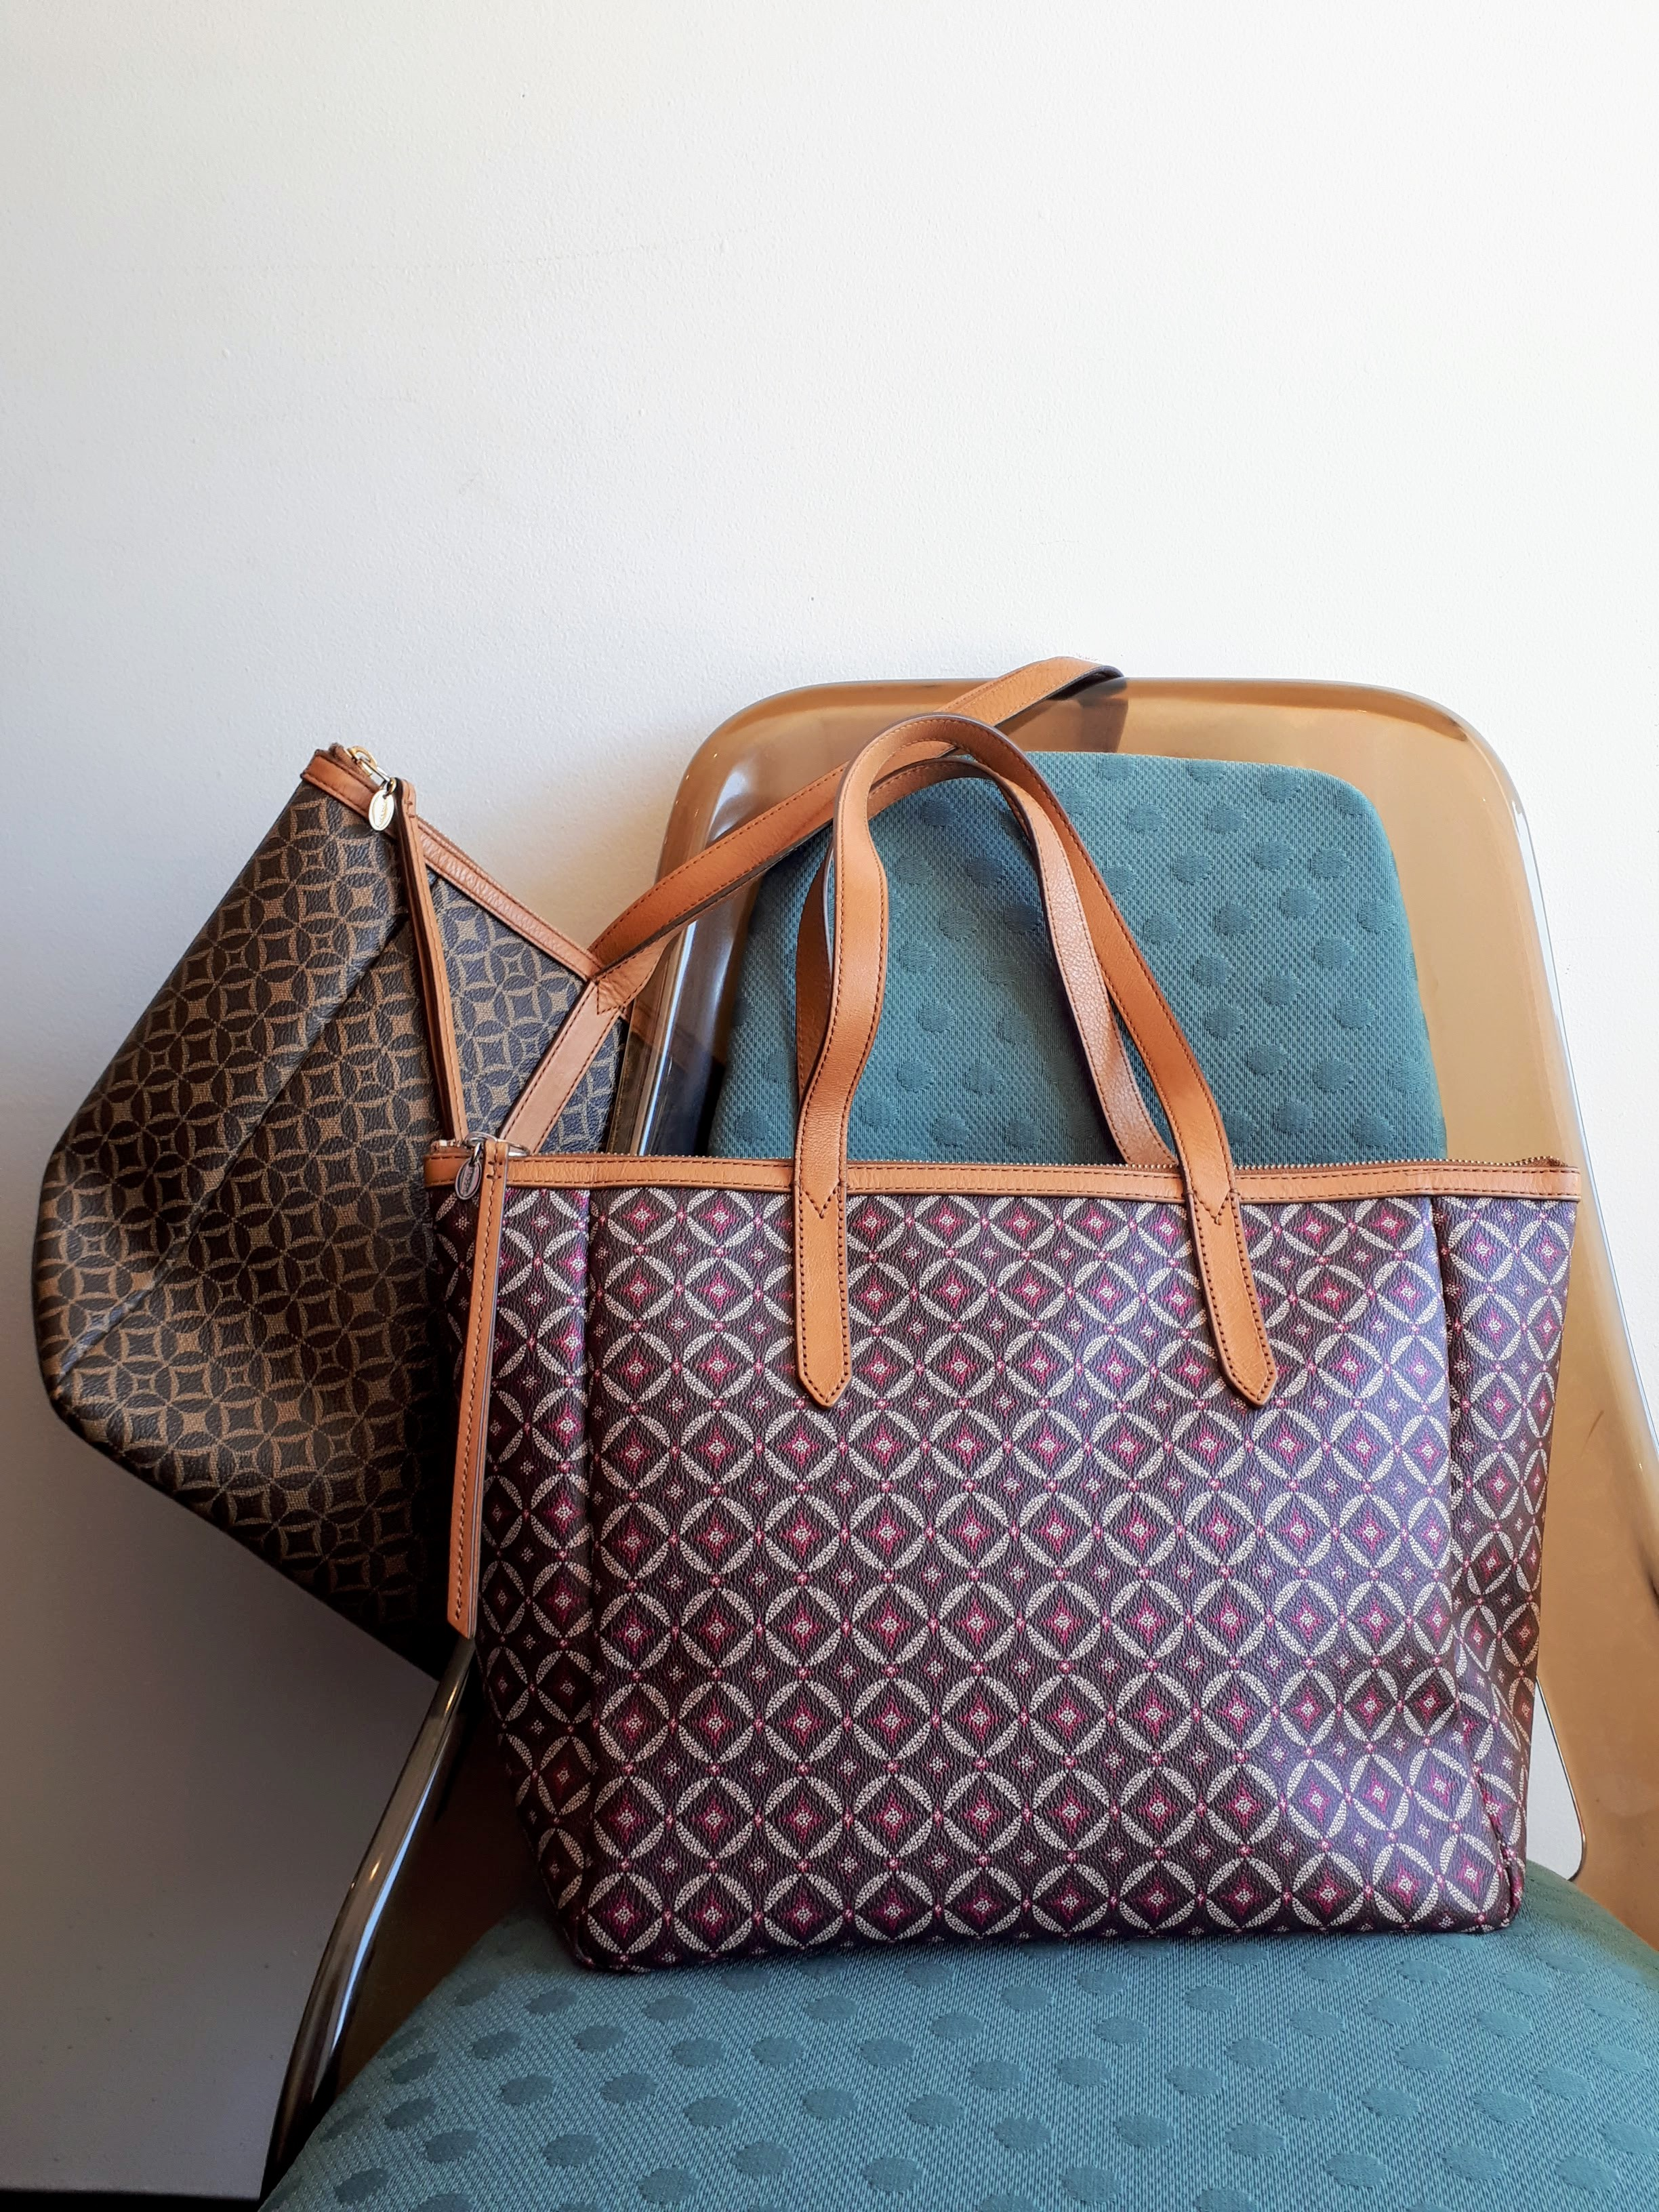 Fossil bags, $85 each